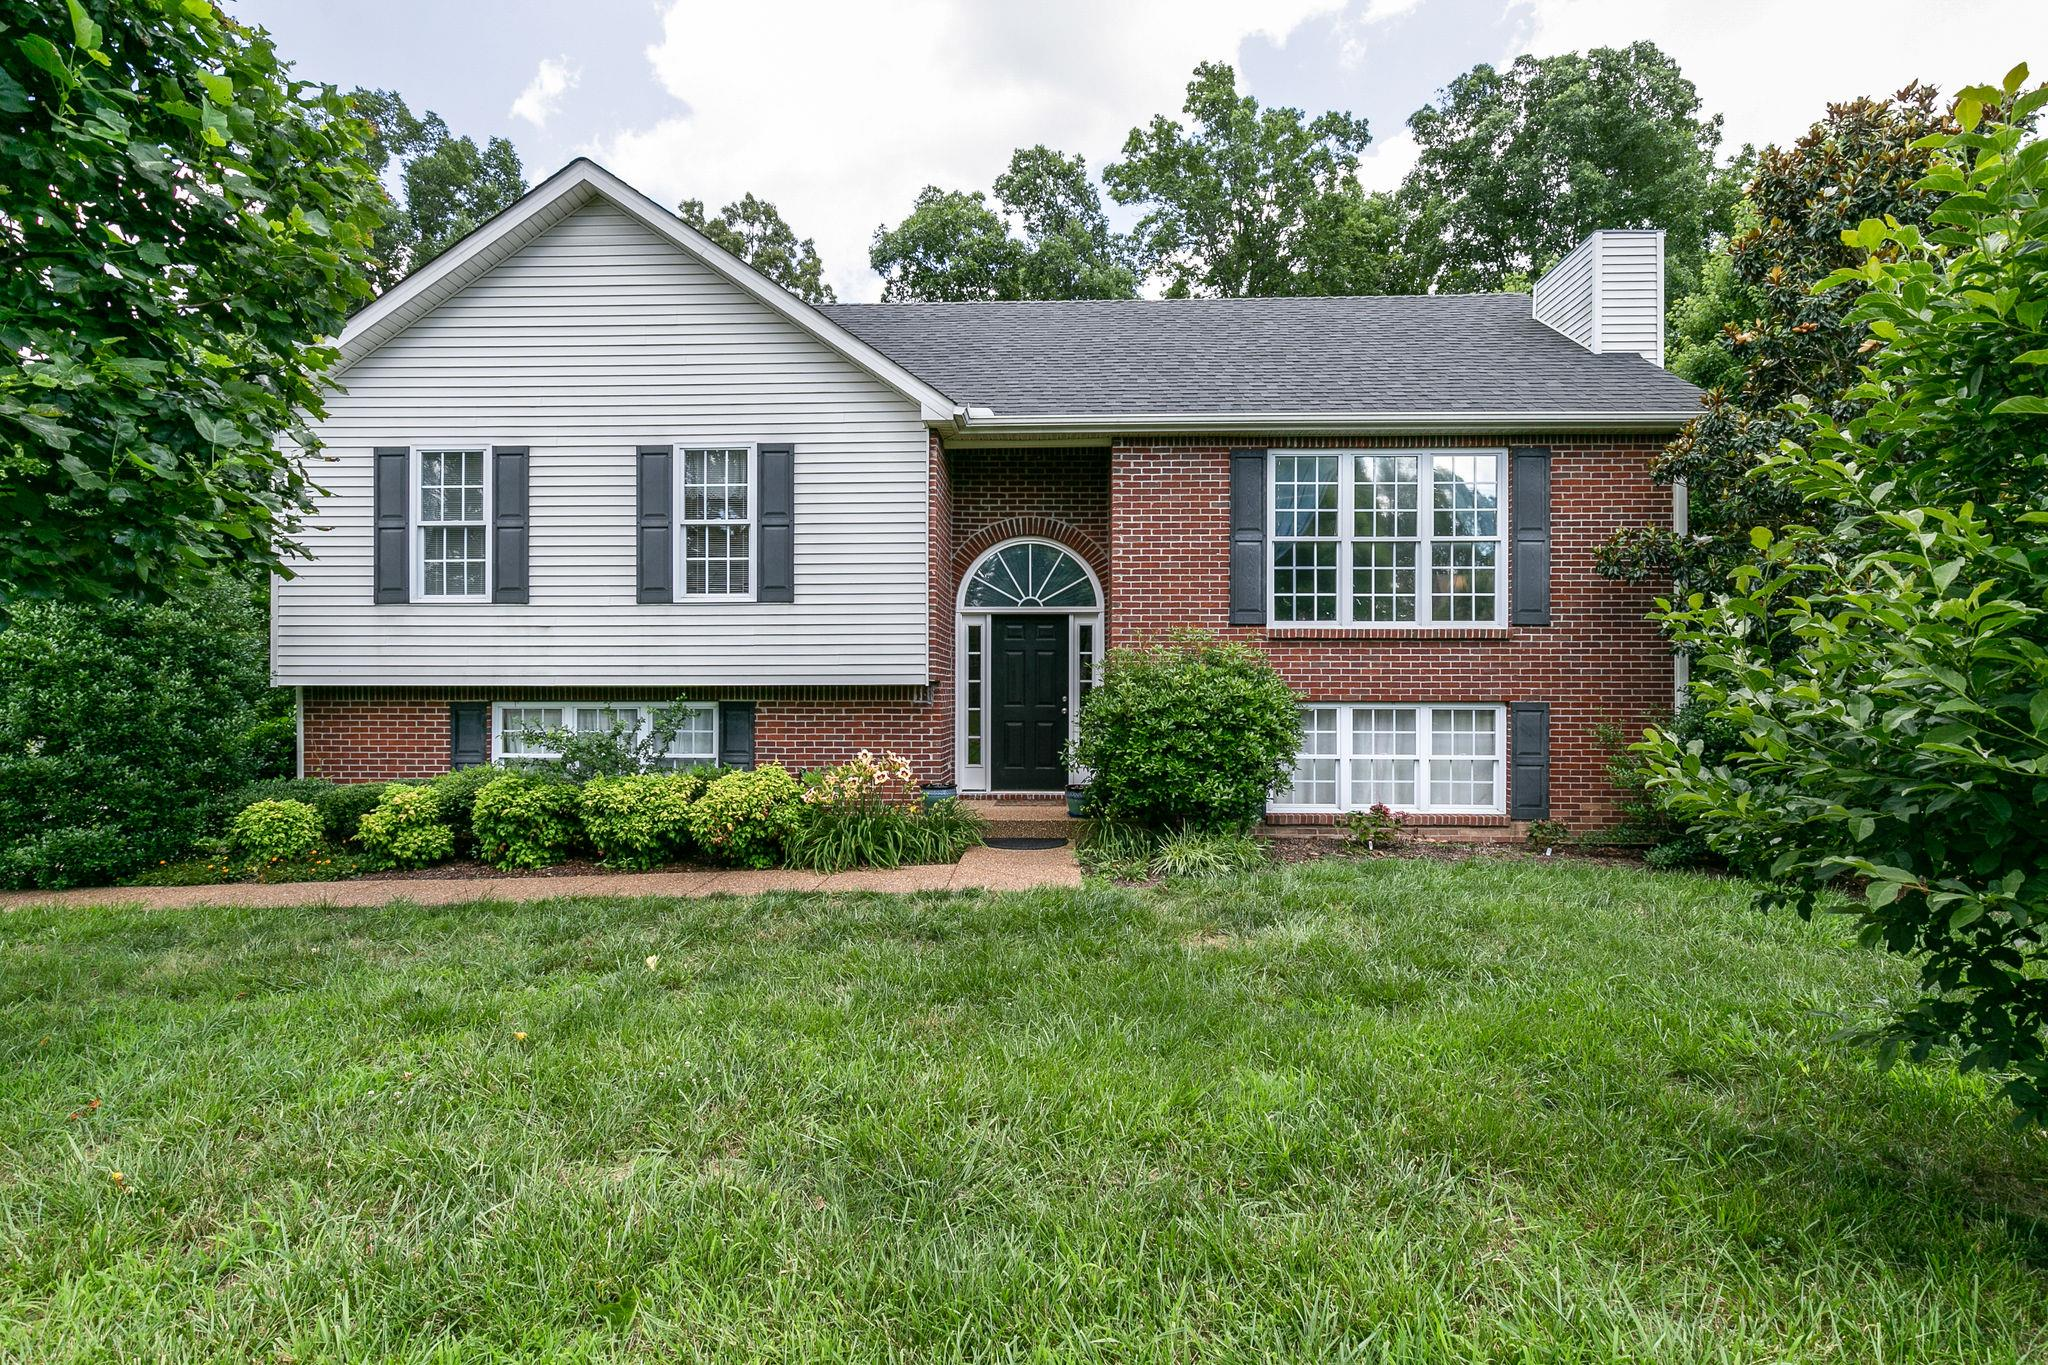 7309 Braxton Bend Ct, Fairview in Williamson County County, TN 37062 Home for Sale